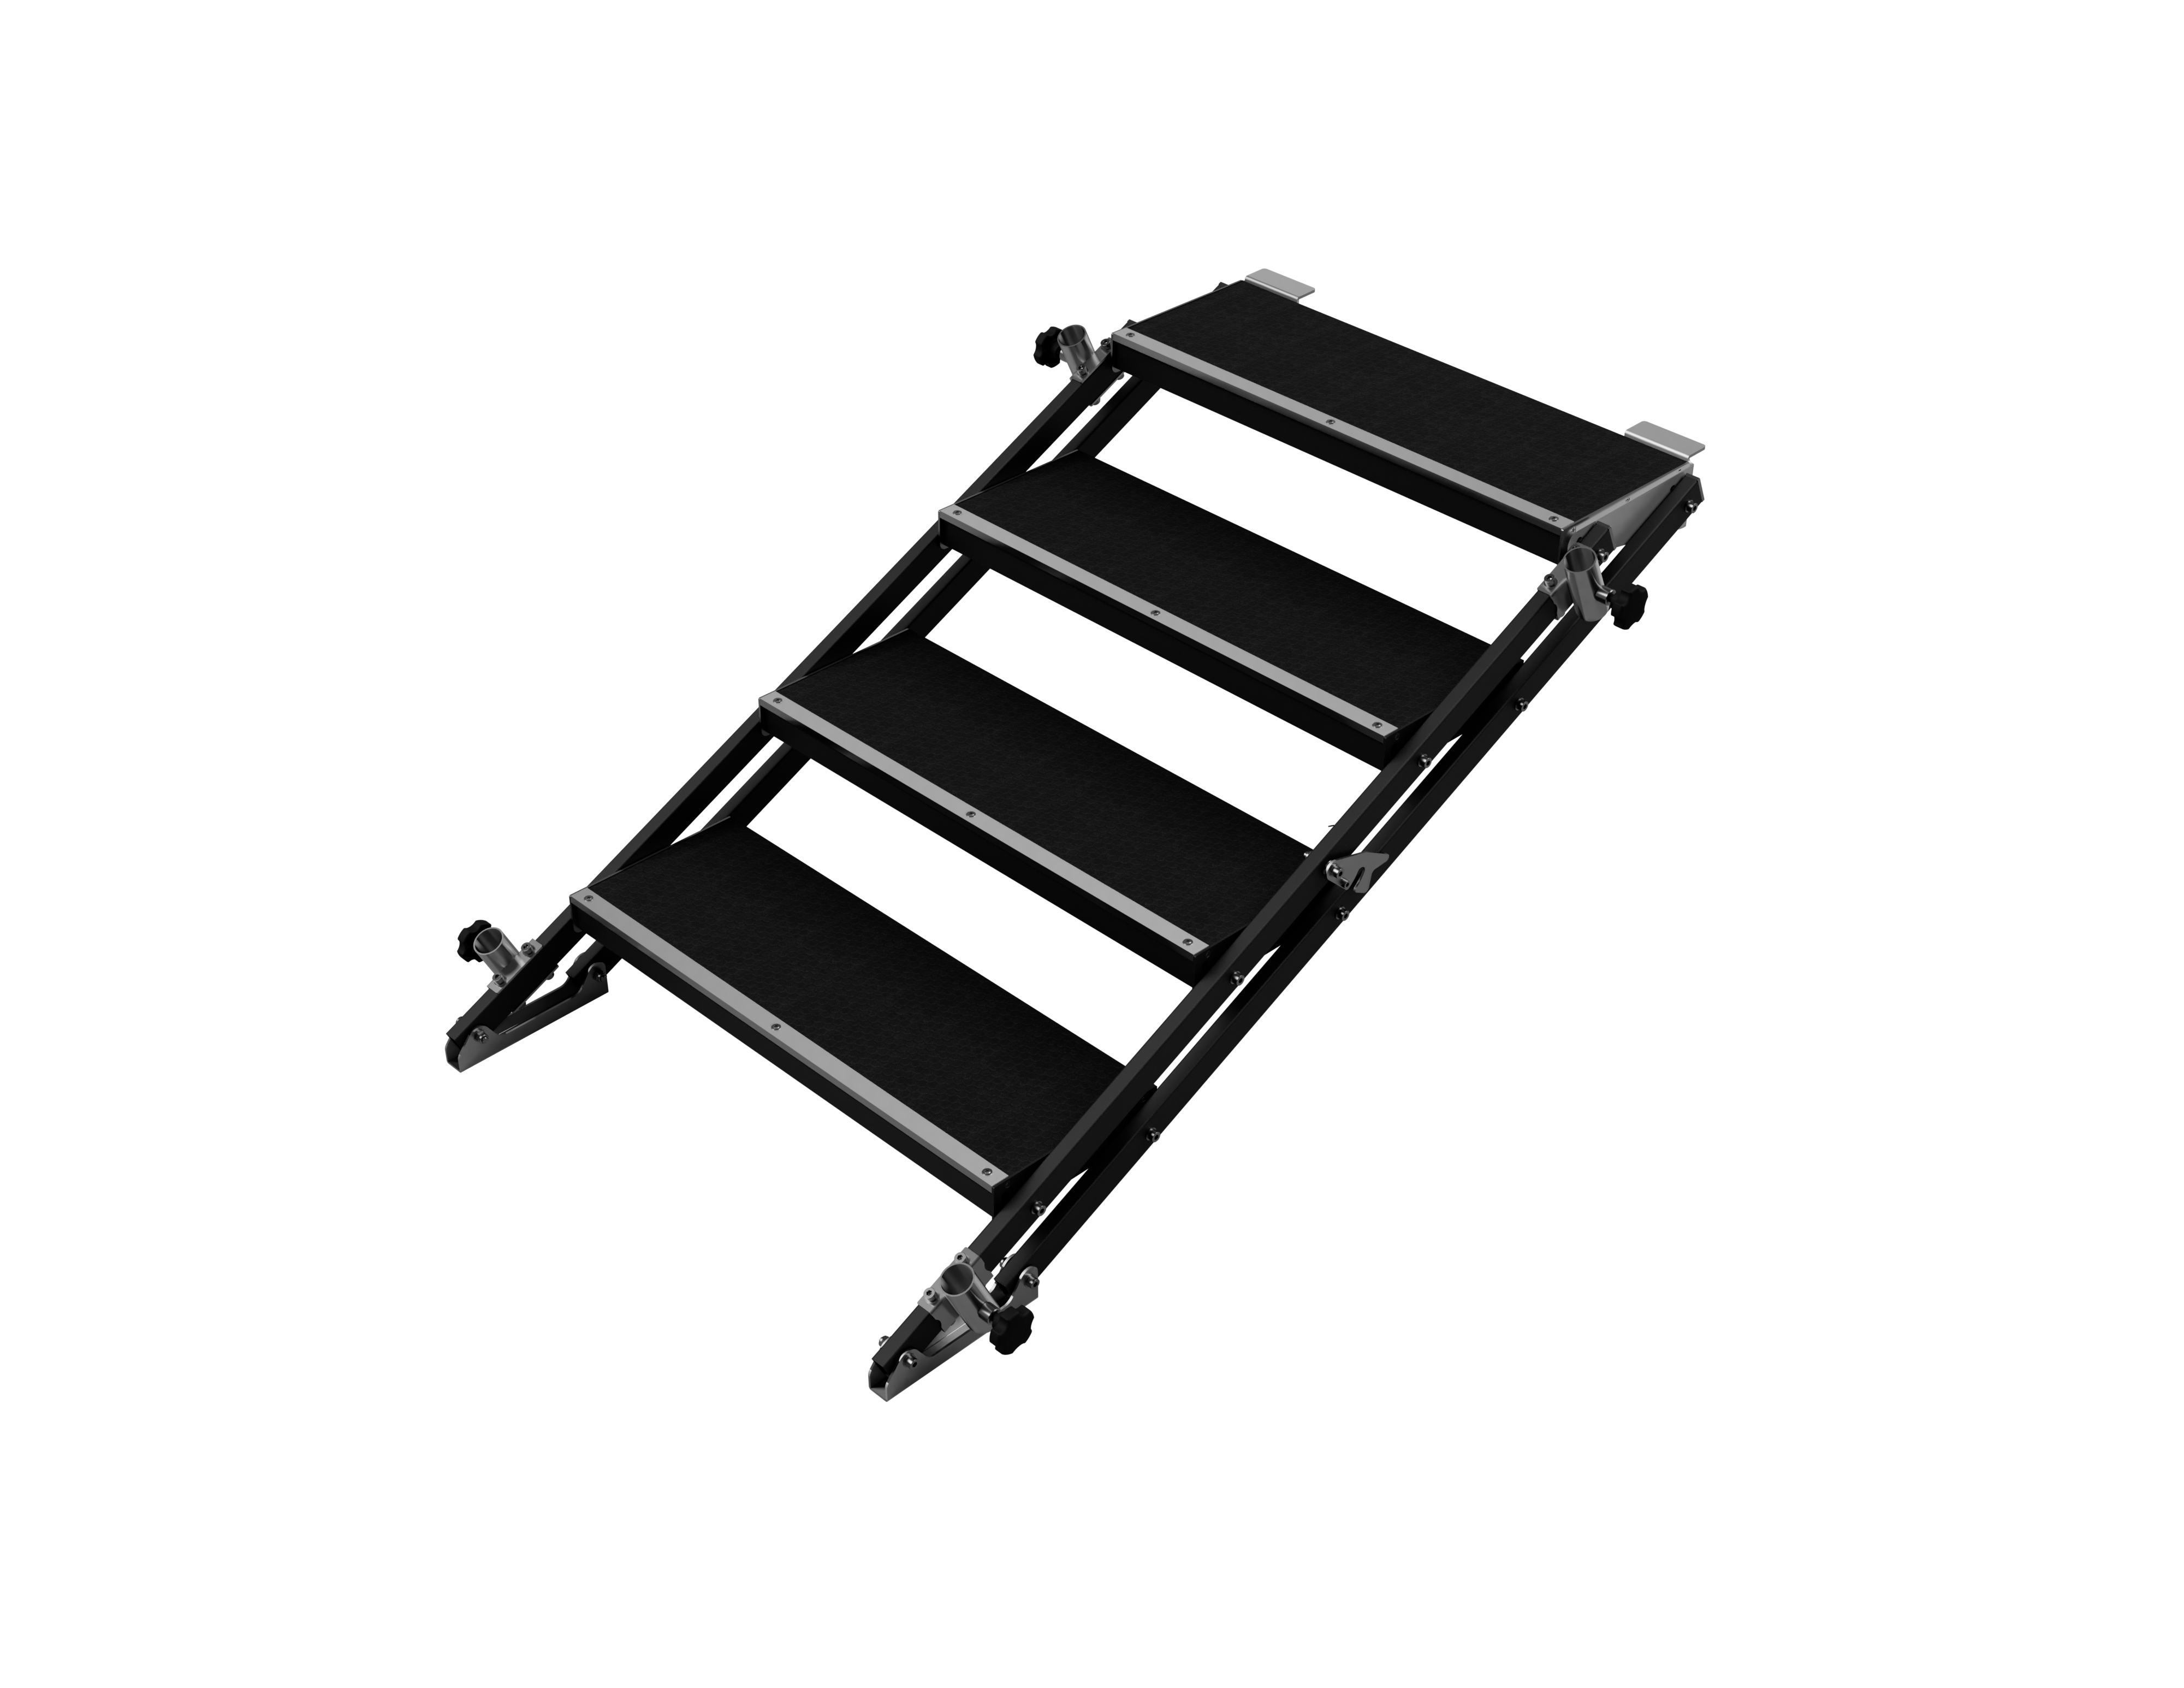 NXD-STAIR-A03 - Adjustable Stair